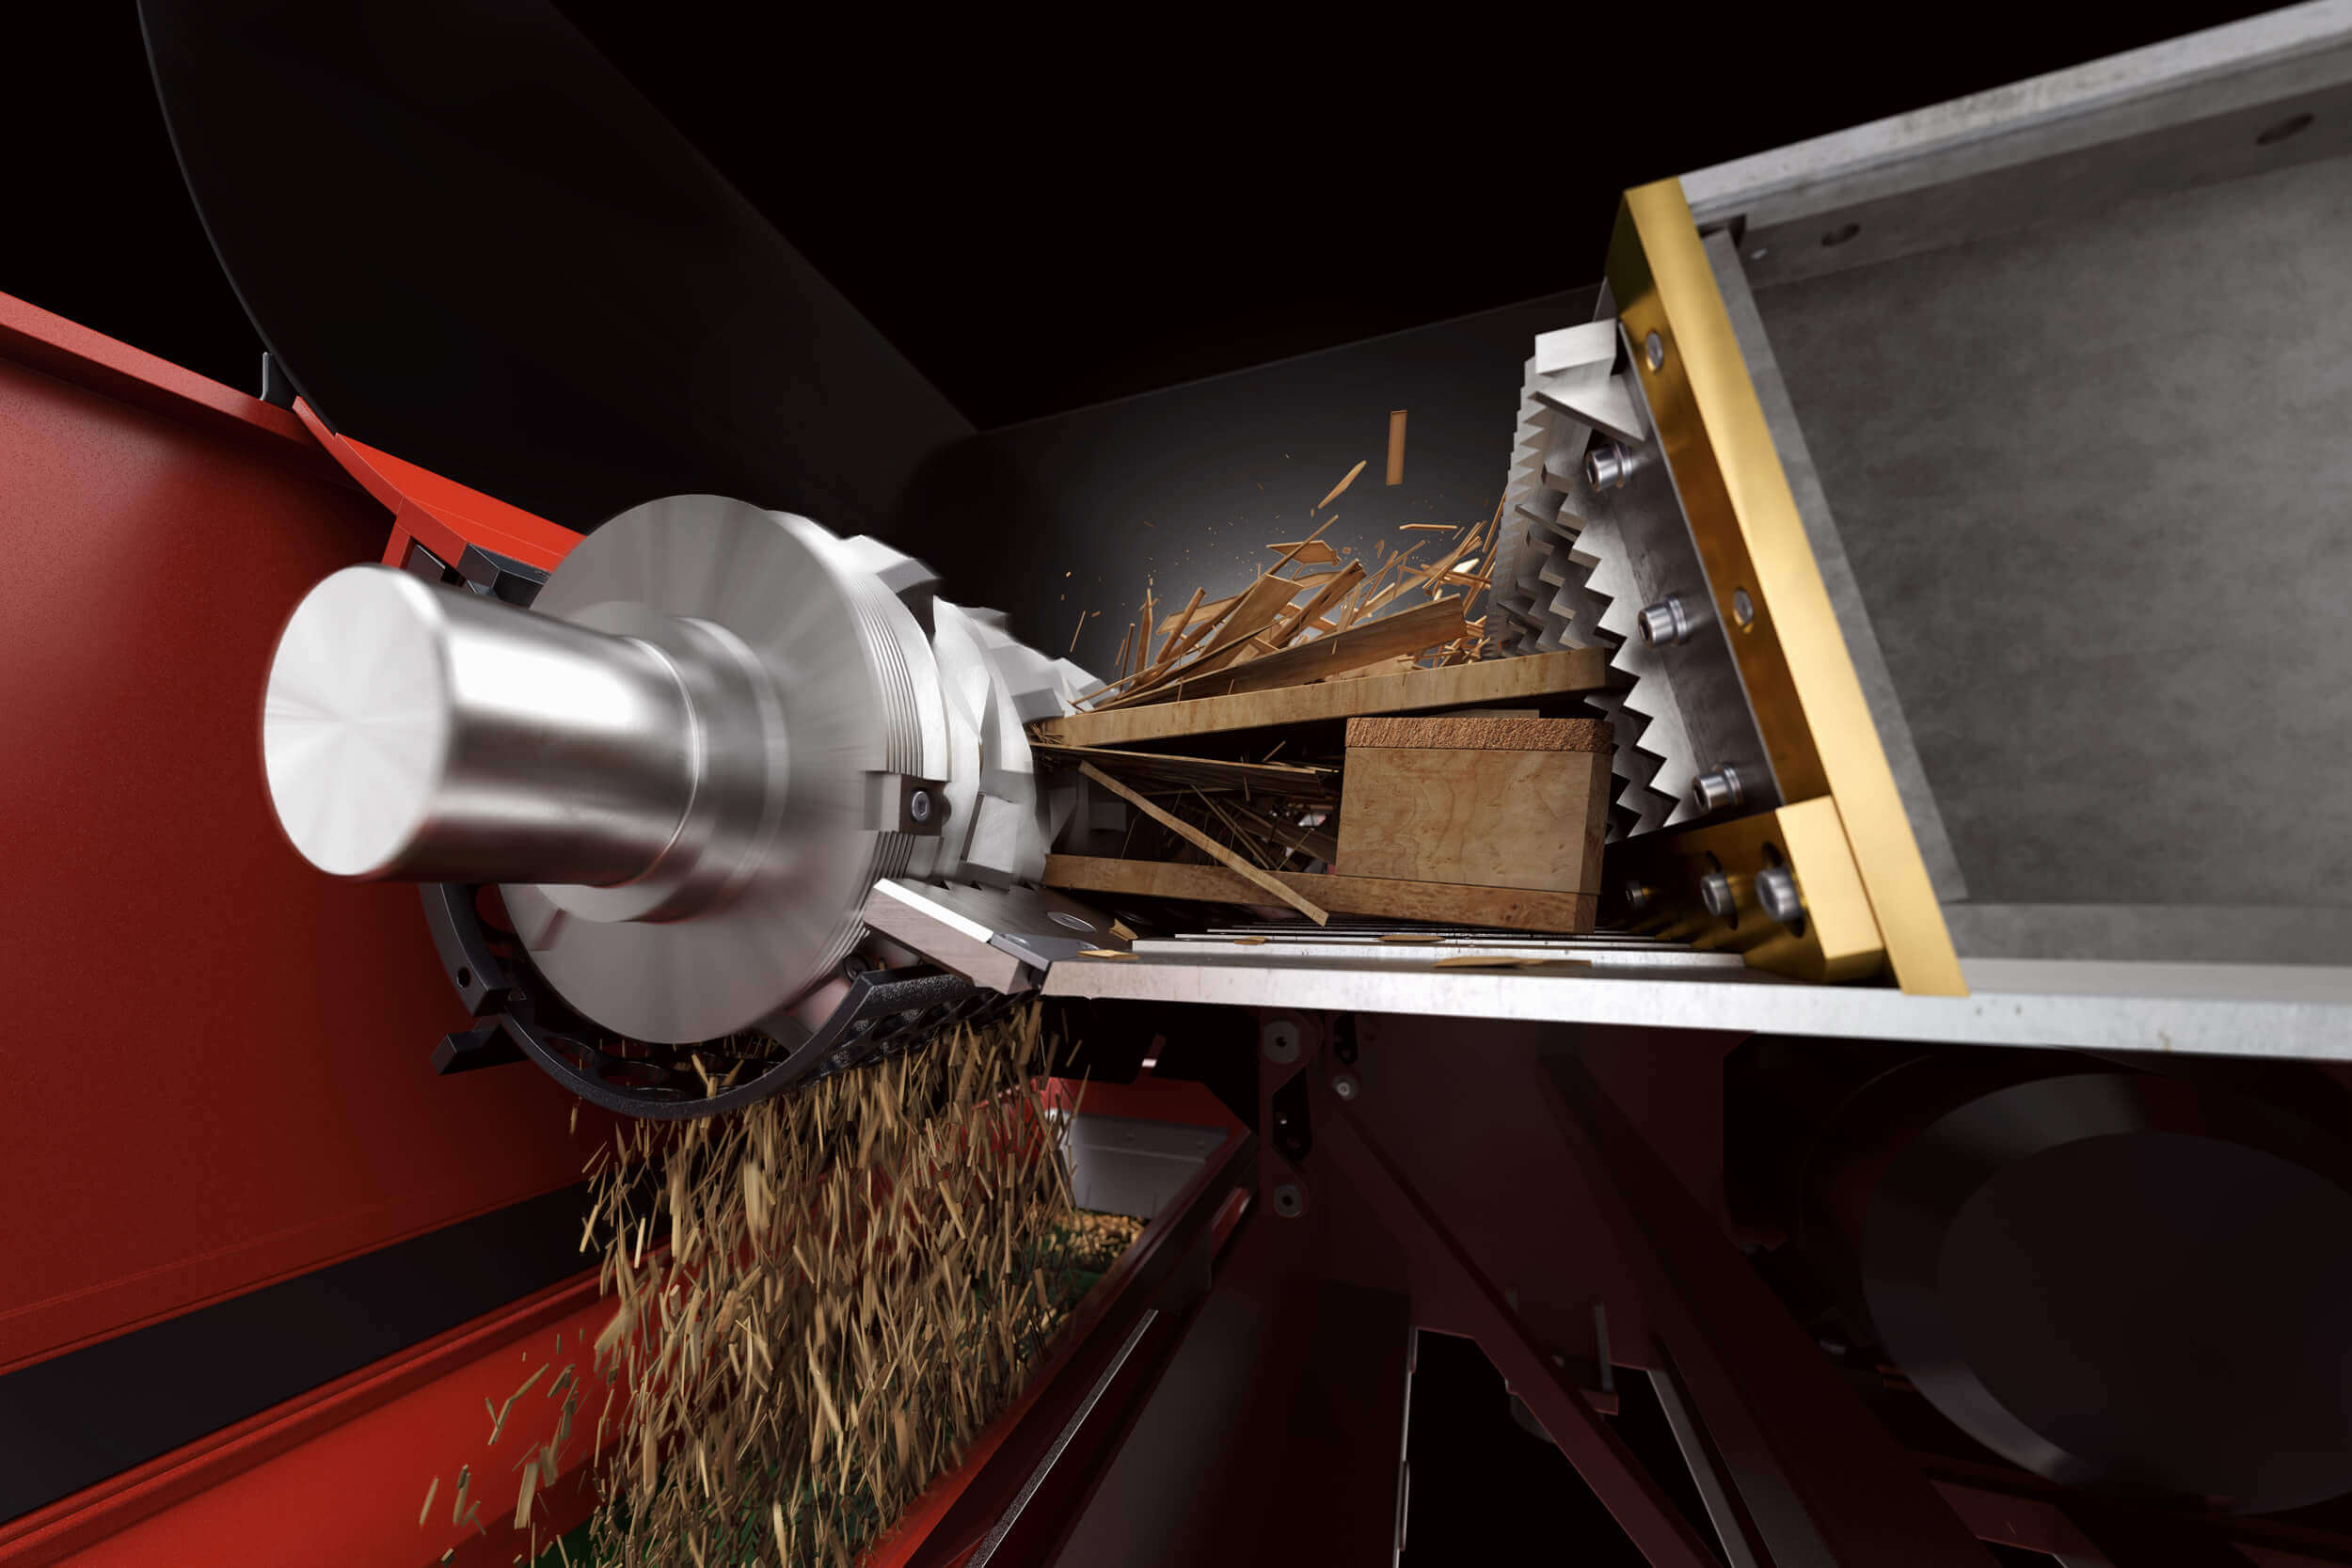 Rendered image of the shredding process with ram, rotor, screen and shredded wood